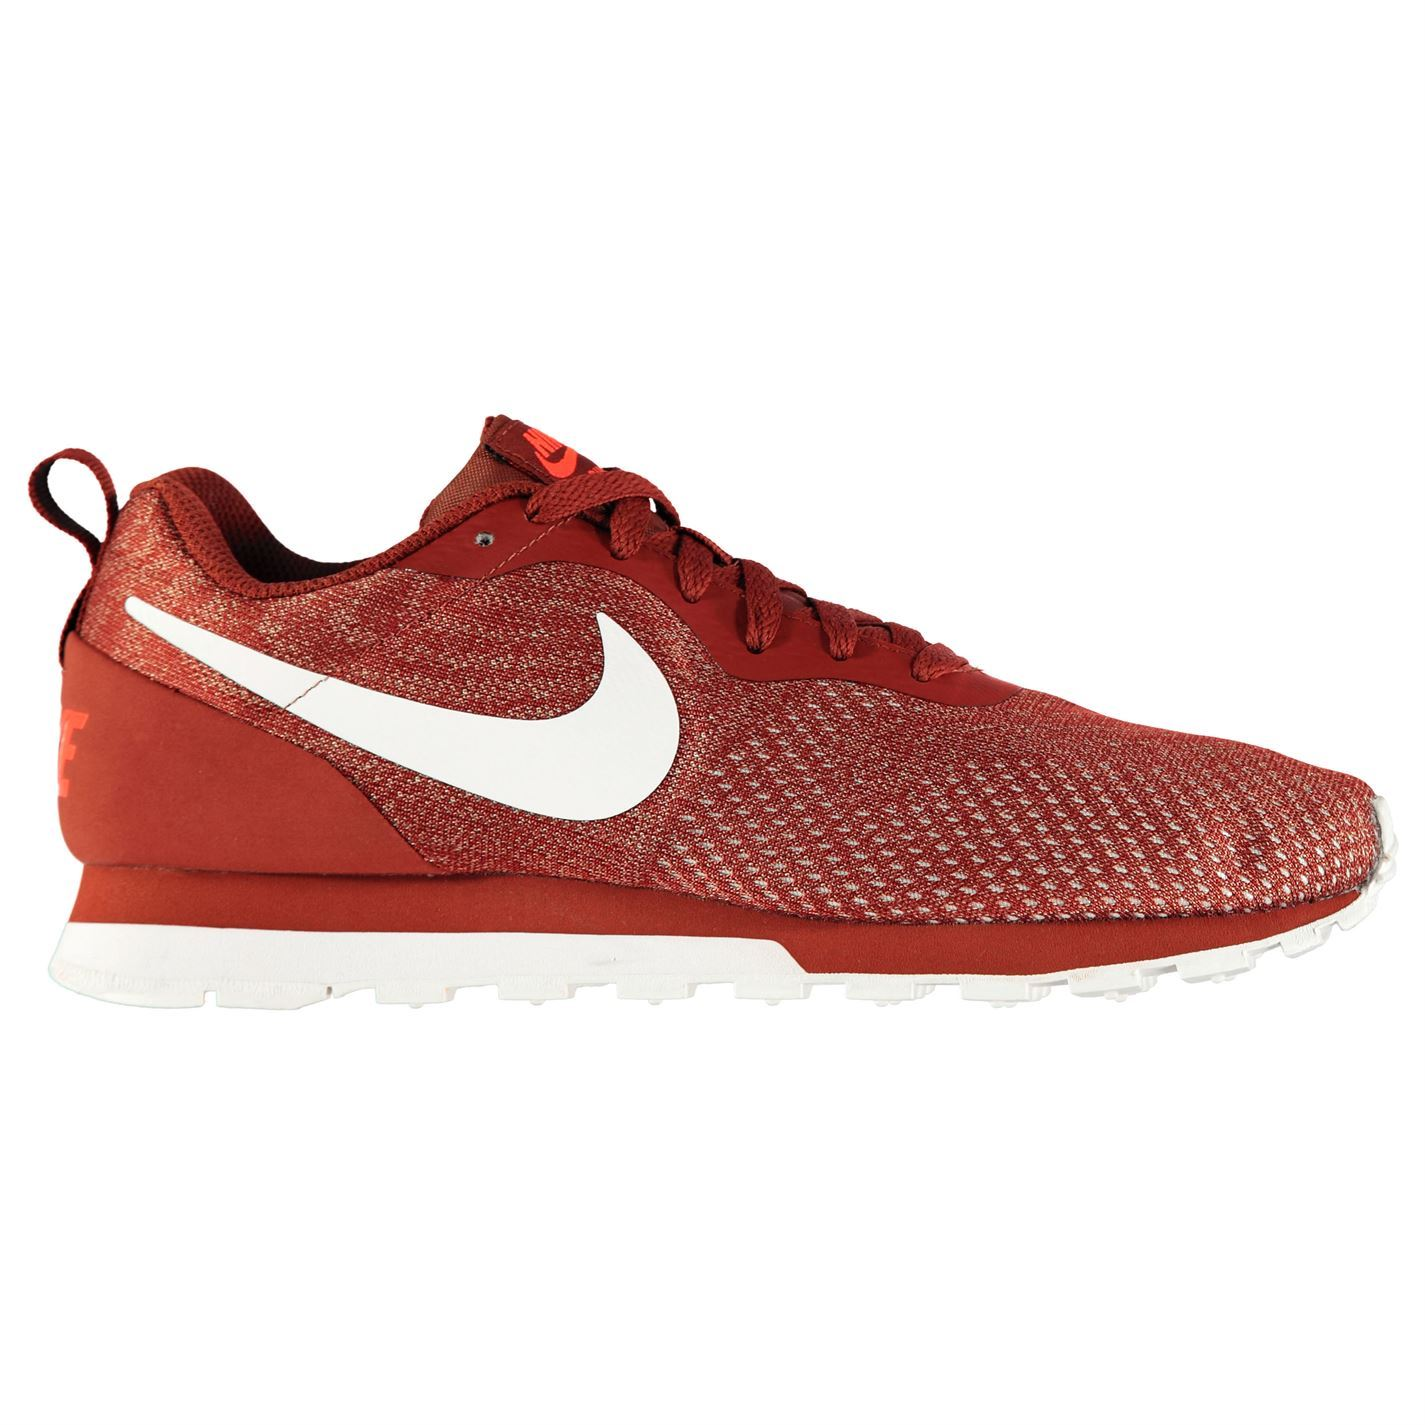 Details zu Nike MD Runner 2 Eng Running Shoes Mens Red Fitness Jogging Trainers Sneakers